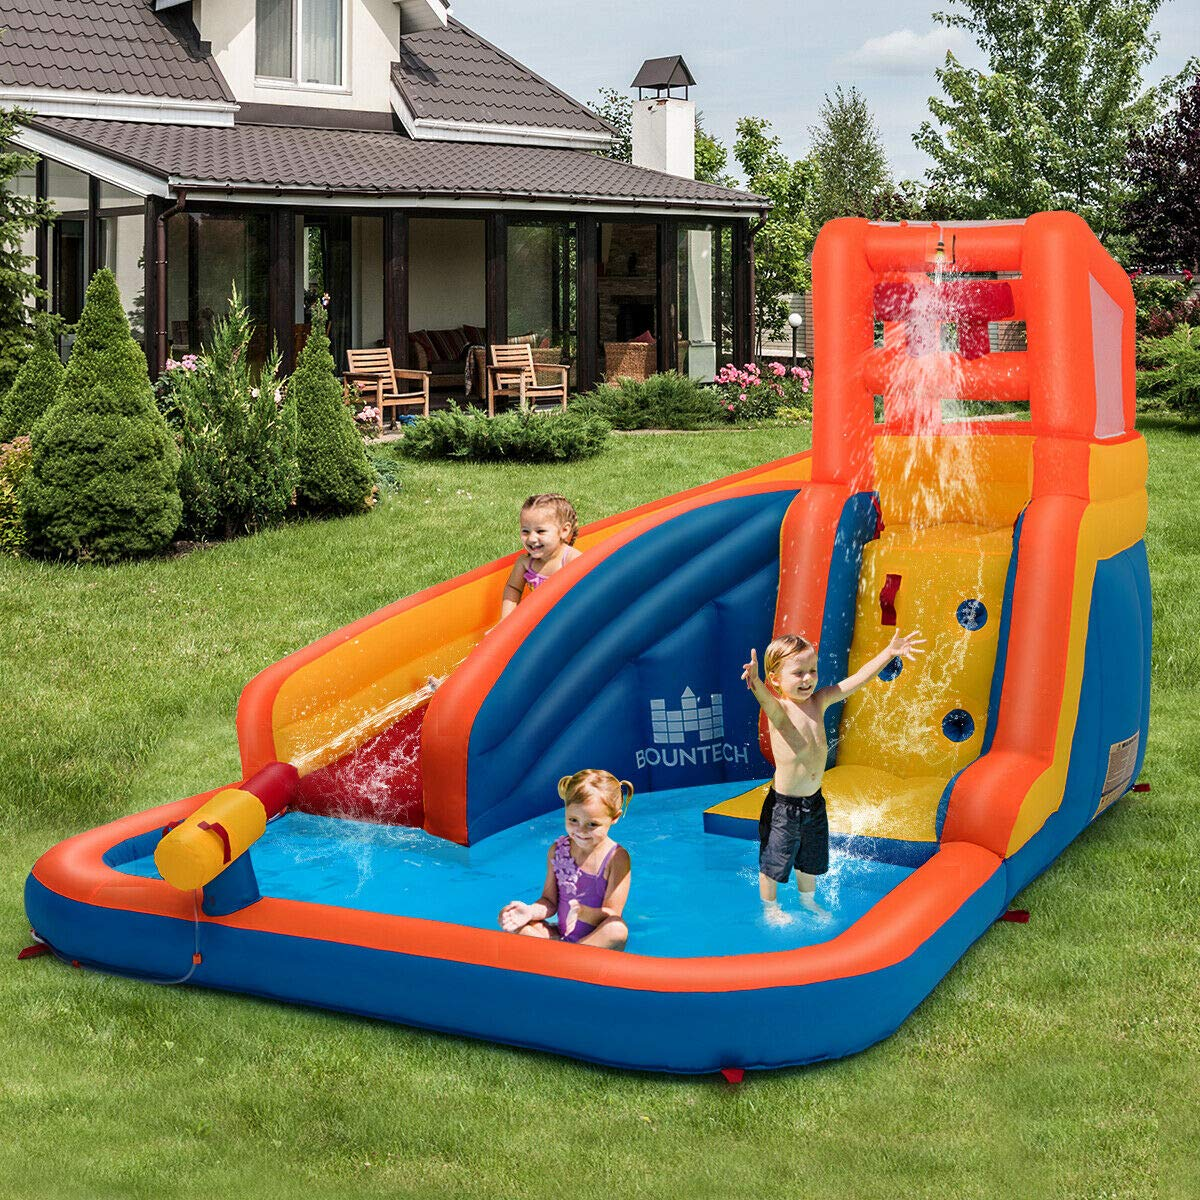 Heize Best Price Orange Inflatable Splash Water Bouncer Slide Bounce House w/ Climbing Wall & Water Hose Splash Pool(U.S. Stock) by Heize Best Price (Image #7)